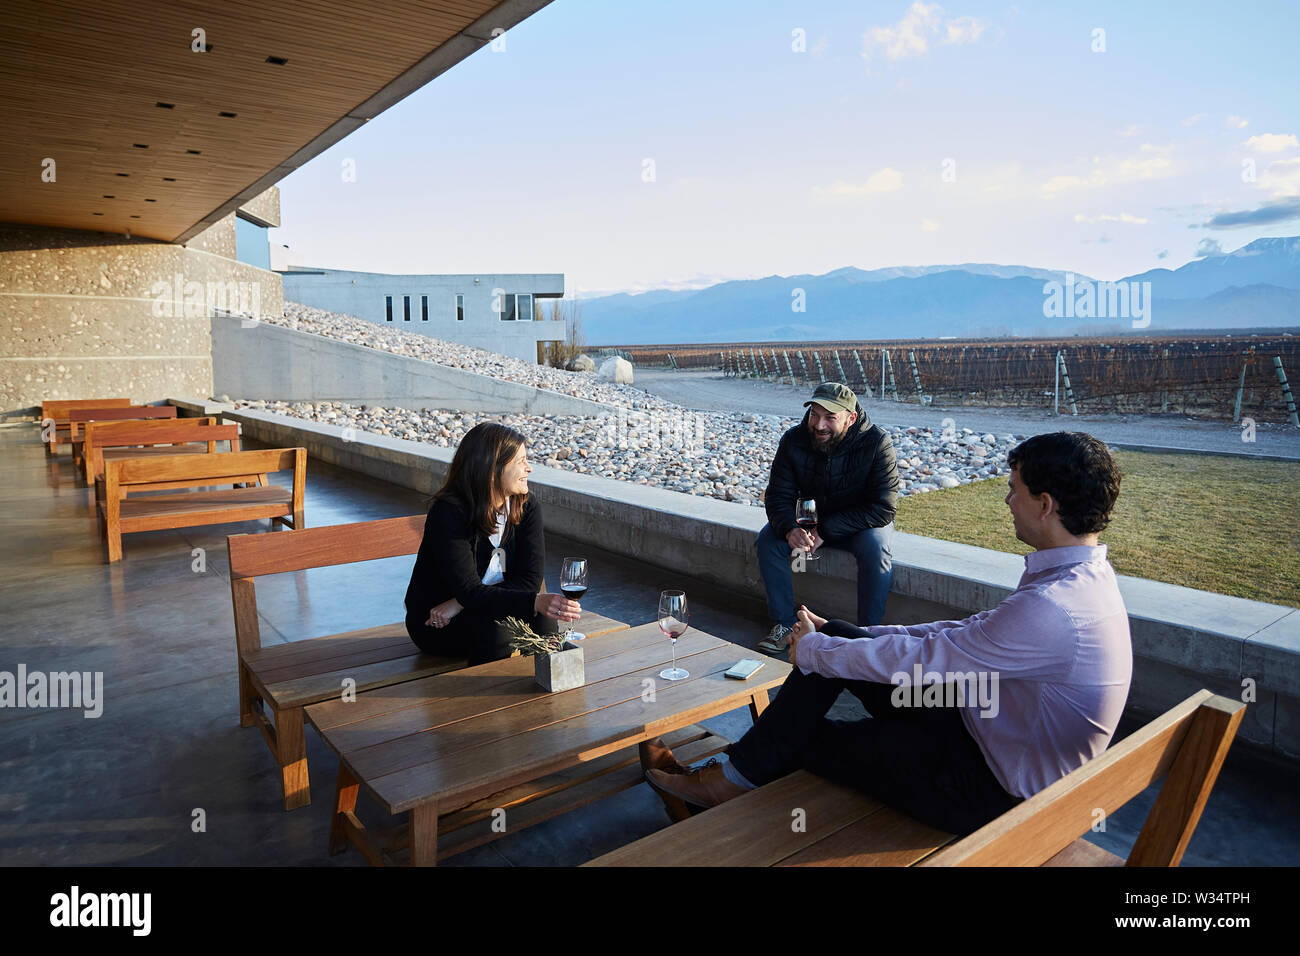 11 July 2019, Argentina, San Carlos: Visitors drink wine on a terrace next to the vineyards of Piedra Infinita. The Argentinian winery Piedra Infinita of the brand Zuccardi, was awarded by the World's Best Vineyards Academy as the best winery and winery in the world. This award recognizes the best 50 wineries in the world, based on the experience offered to the visitor. Photo: Marcelo Aguilar/dpa - Stock Image